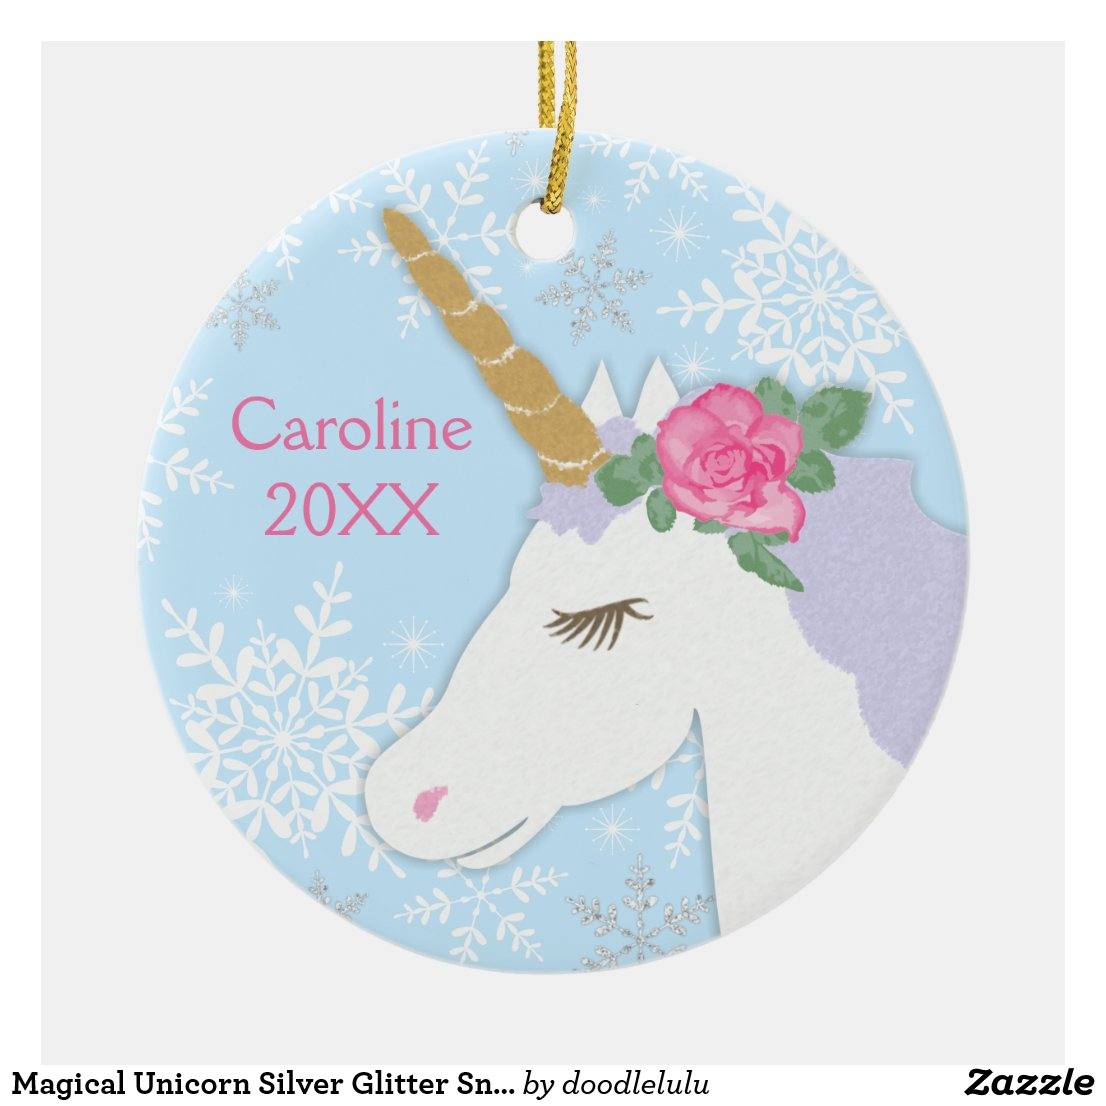 Magical Unicorn Silver Glitter Snowflakes Ceramic Ornament